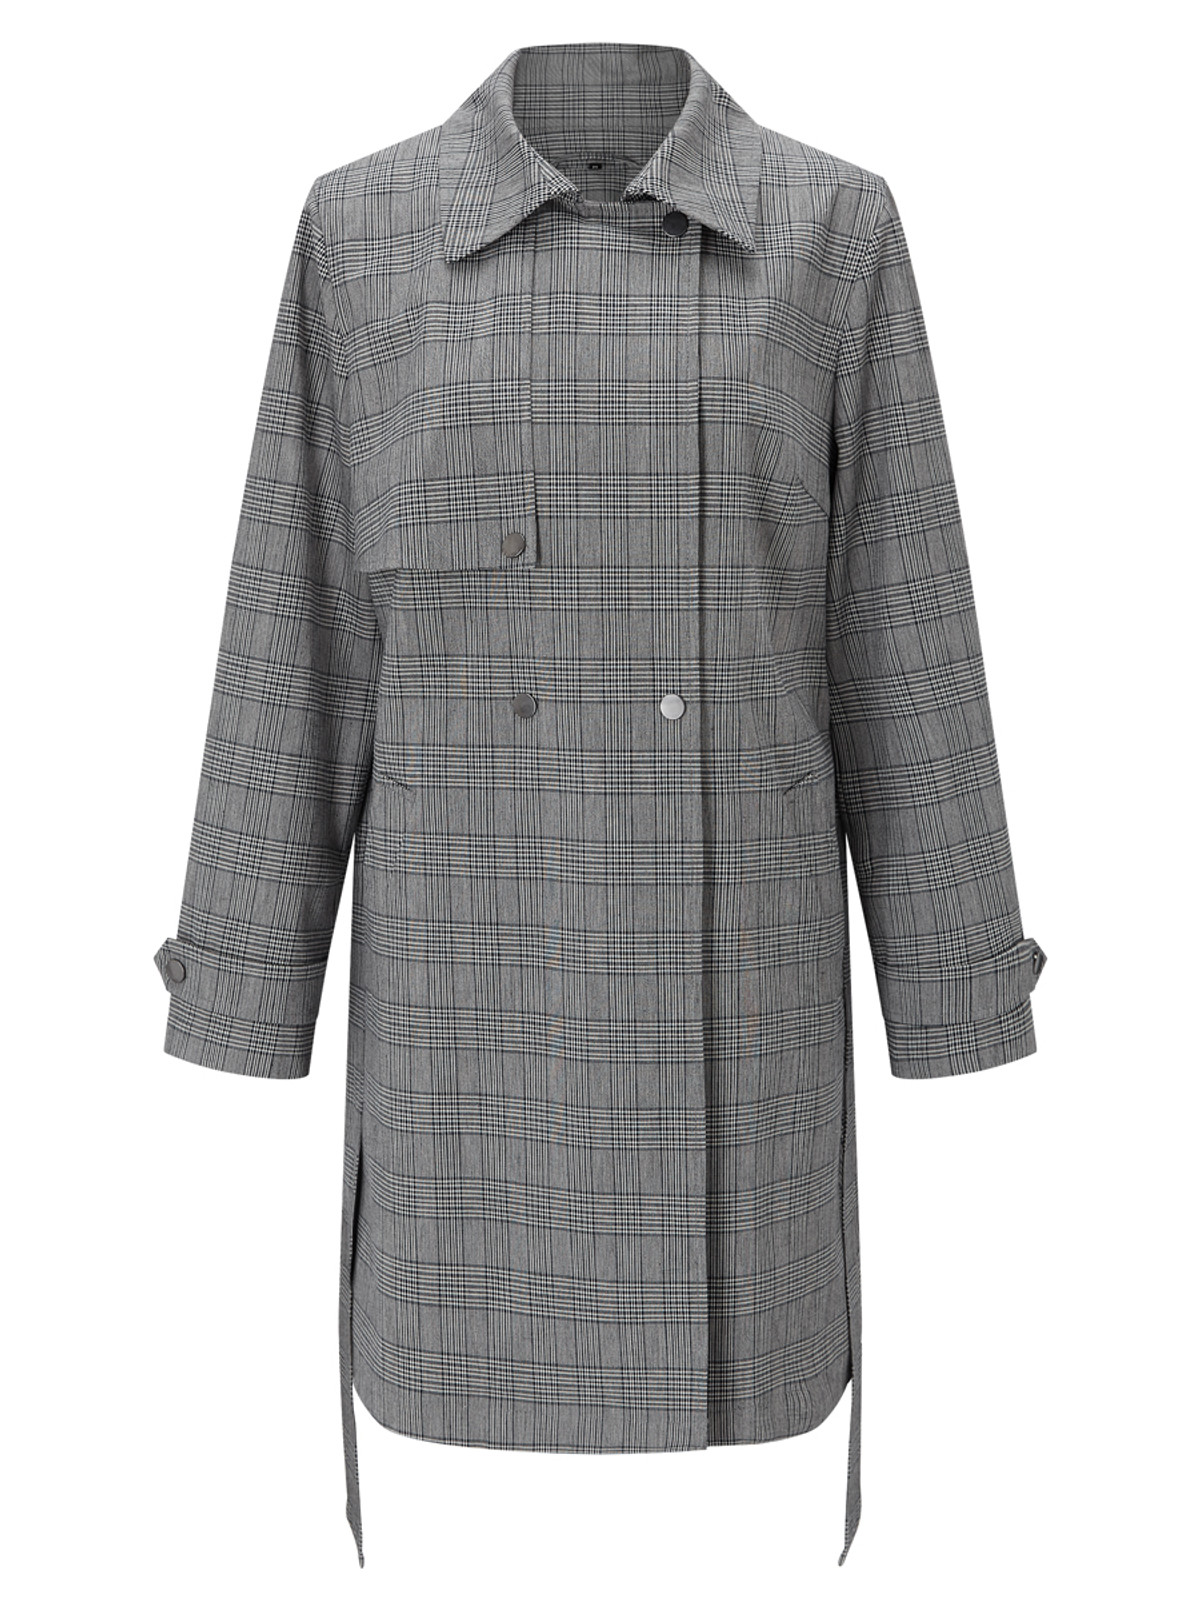 ELSTREE – Check Trench Coat, Grey